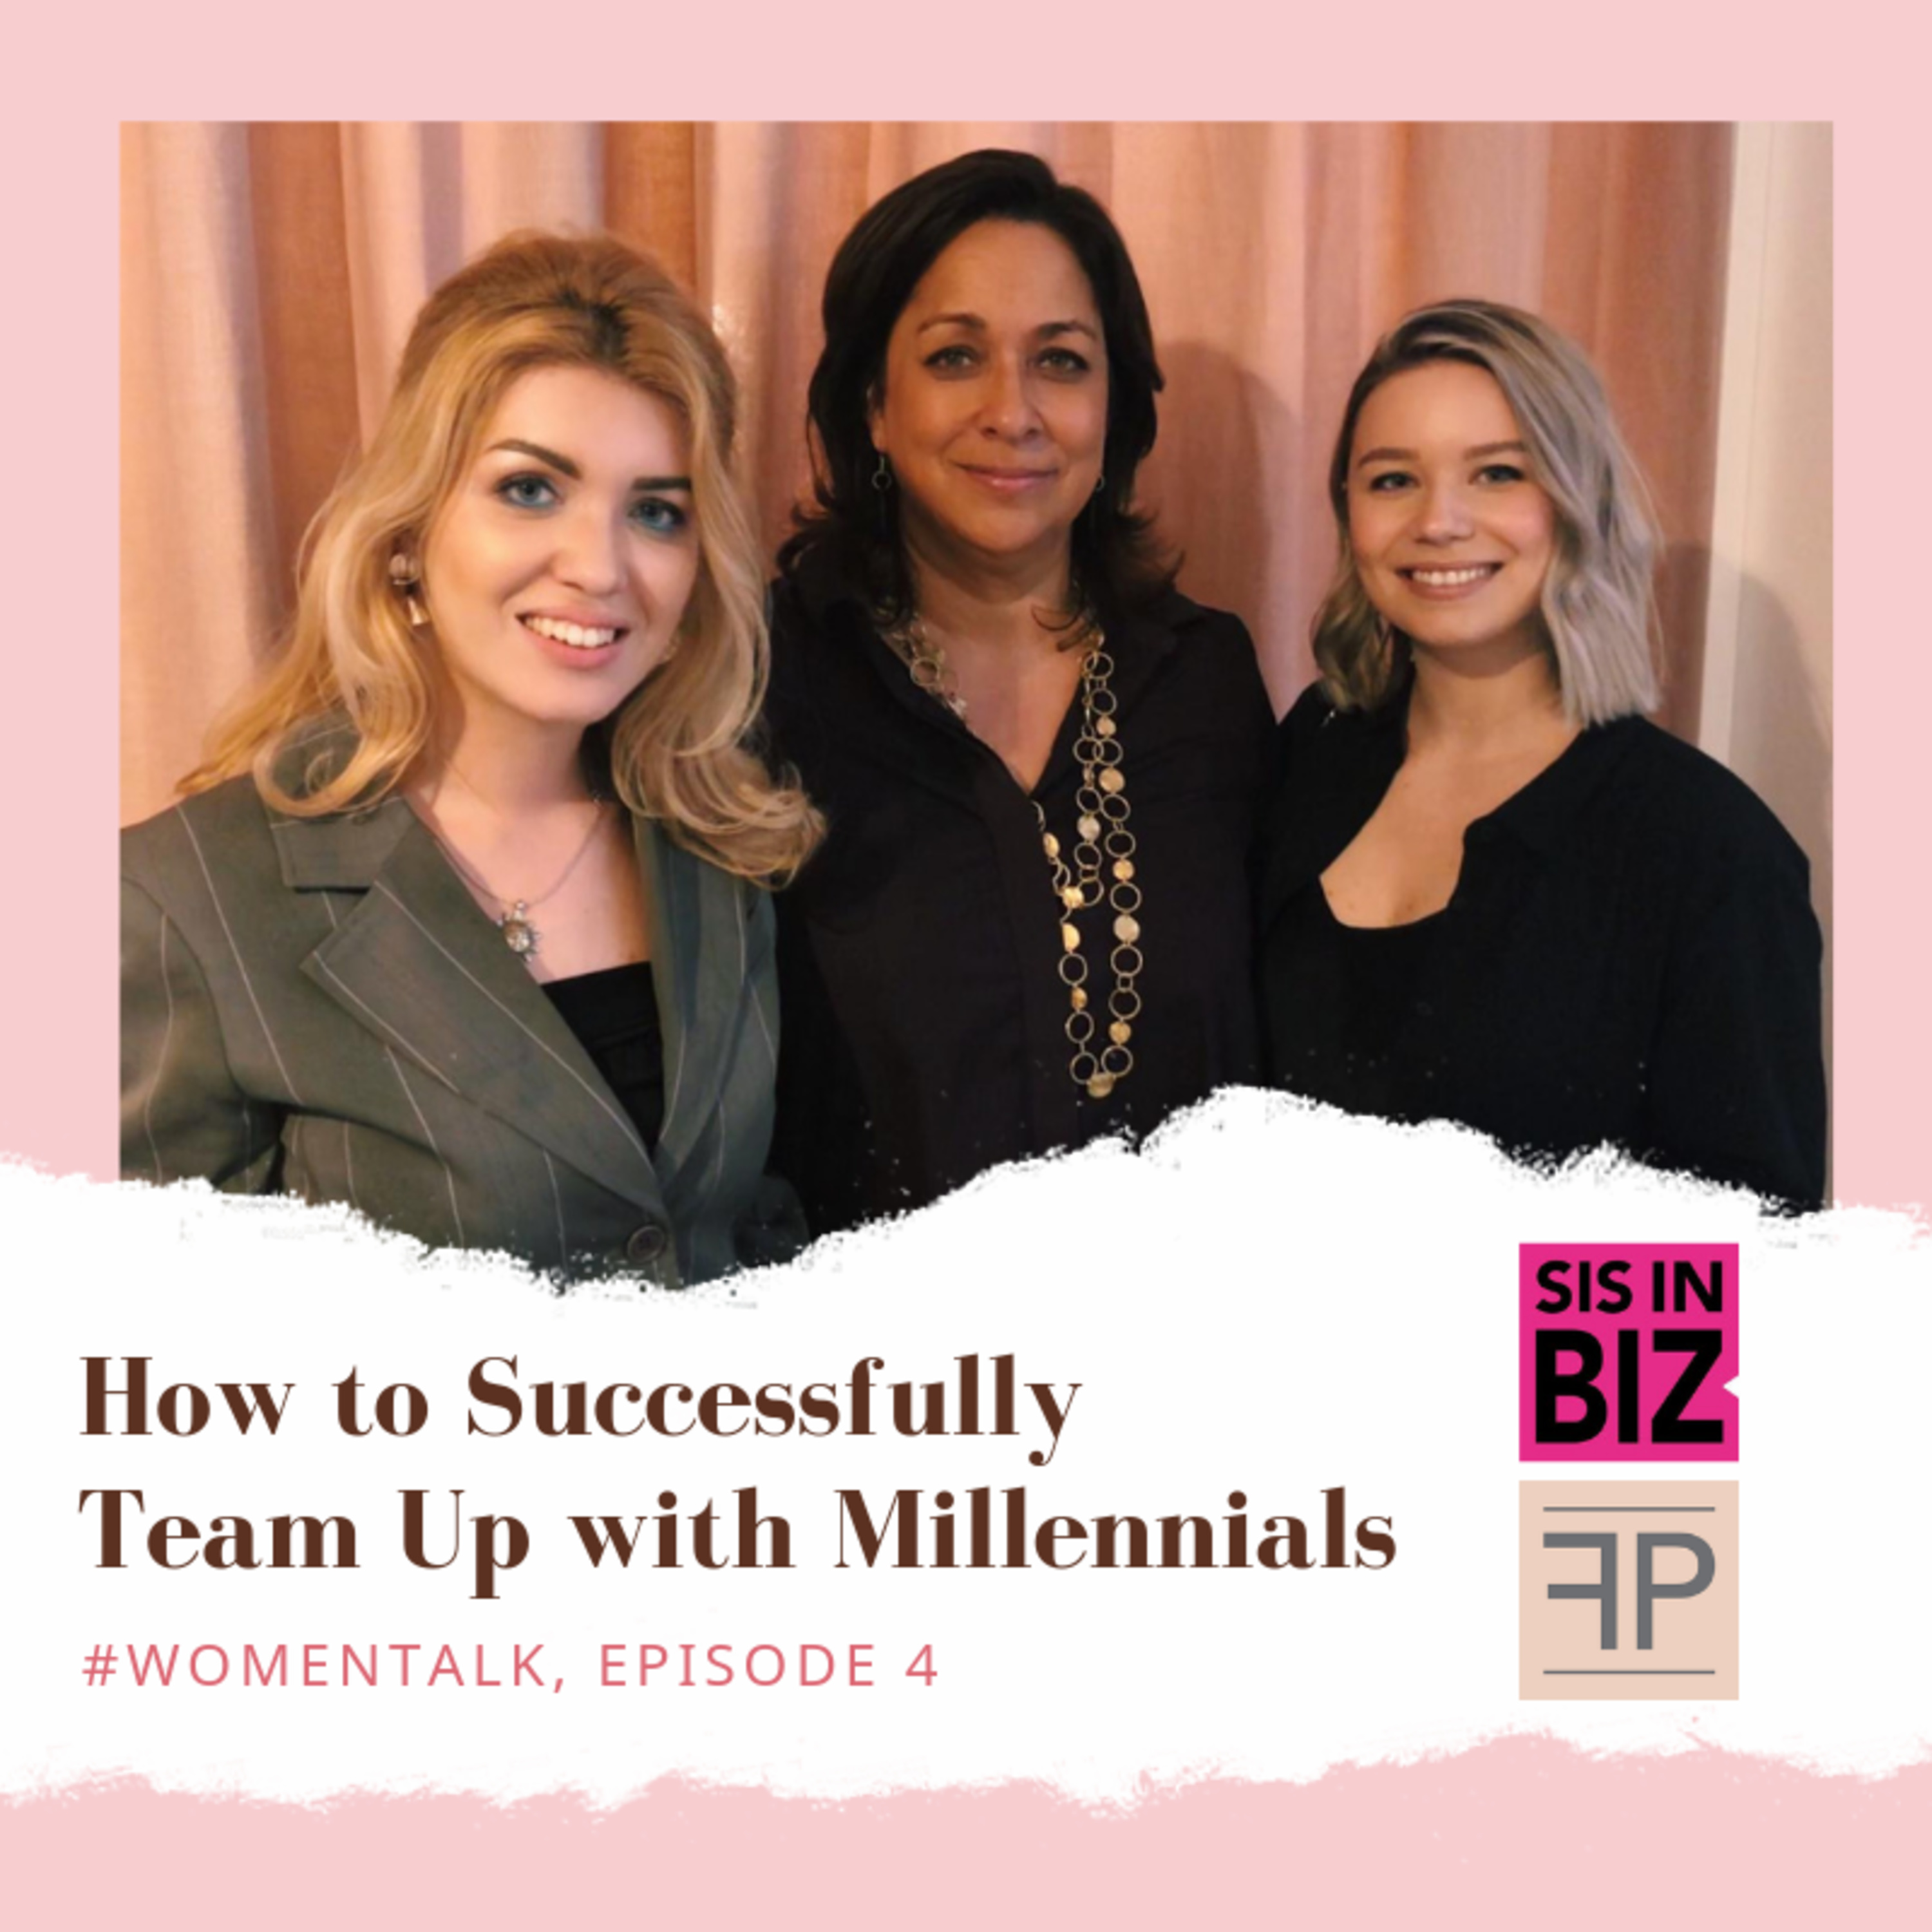 How To Successfully Team Up with Millennials